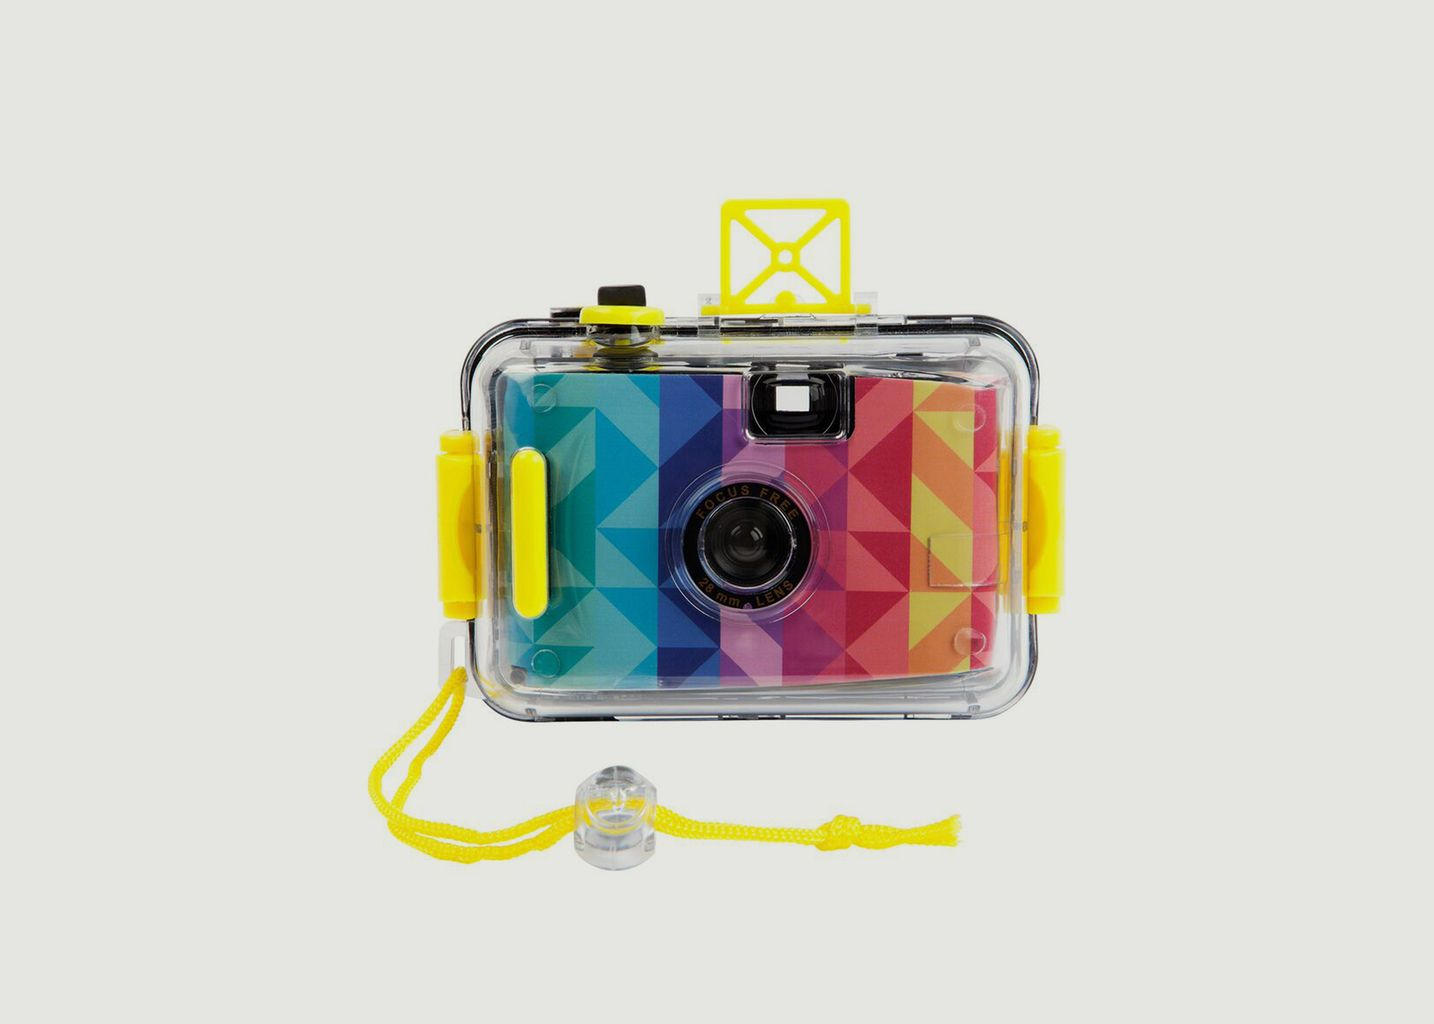 Appareil Photo Waterproof Montbello - Sunny Life